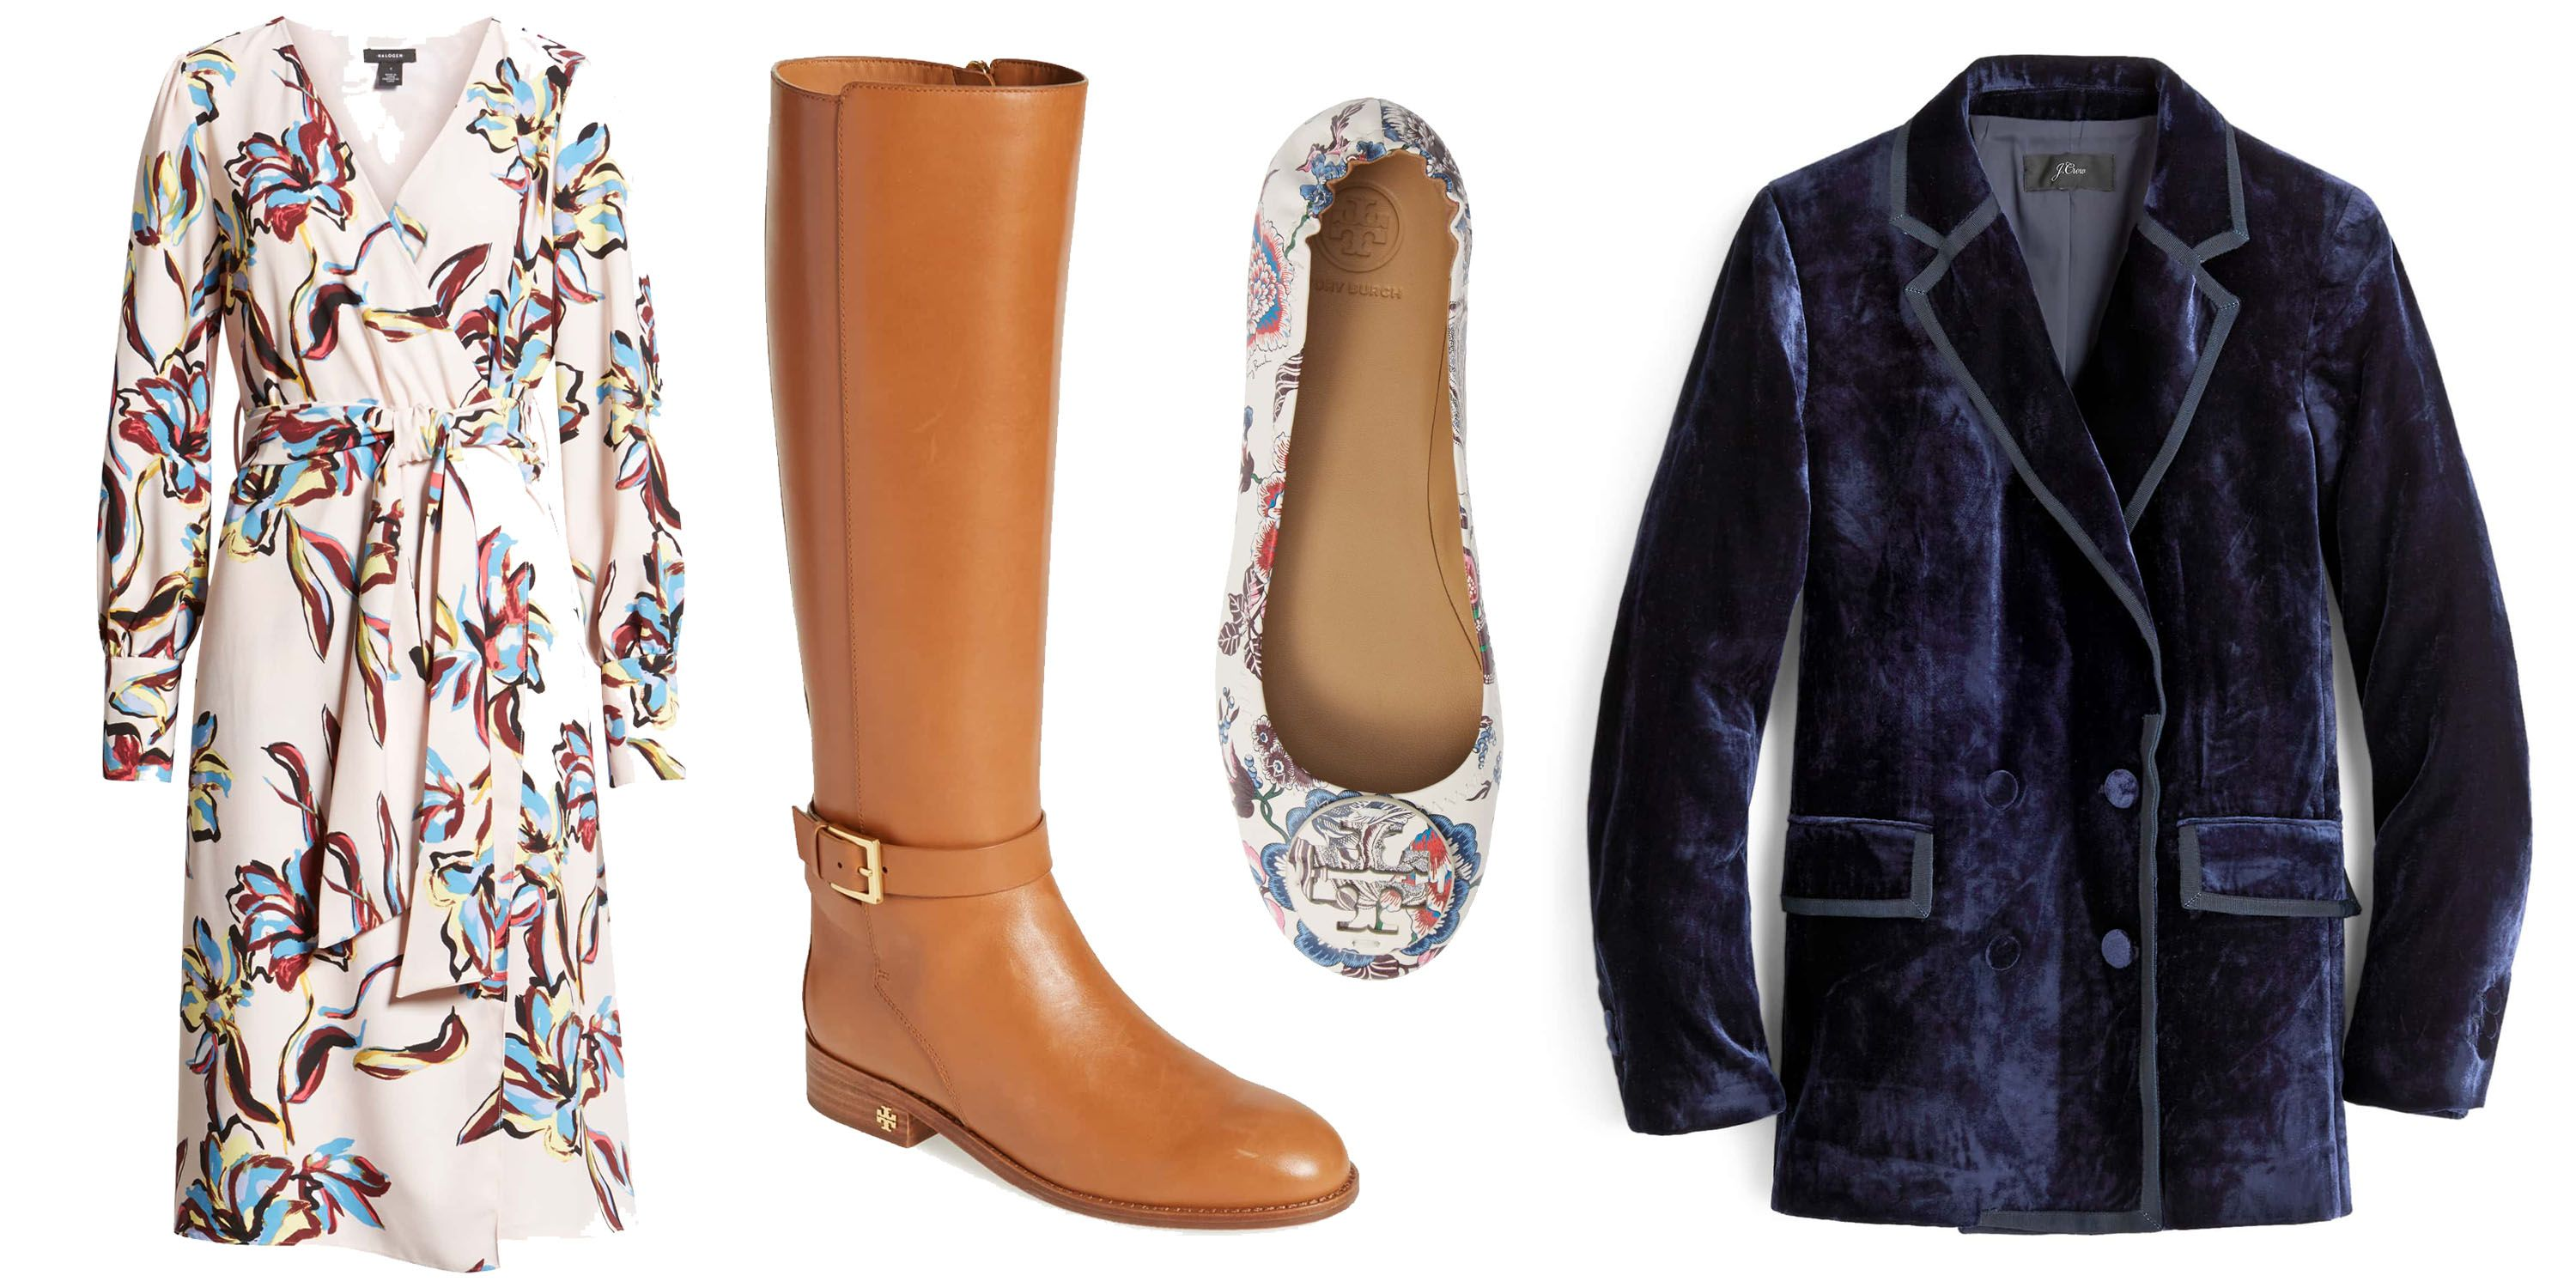 f8a27e63e Fall Favorites Are 40 Percent Off At Nordstrom s Fall Sale - Shop ...